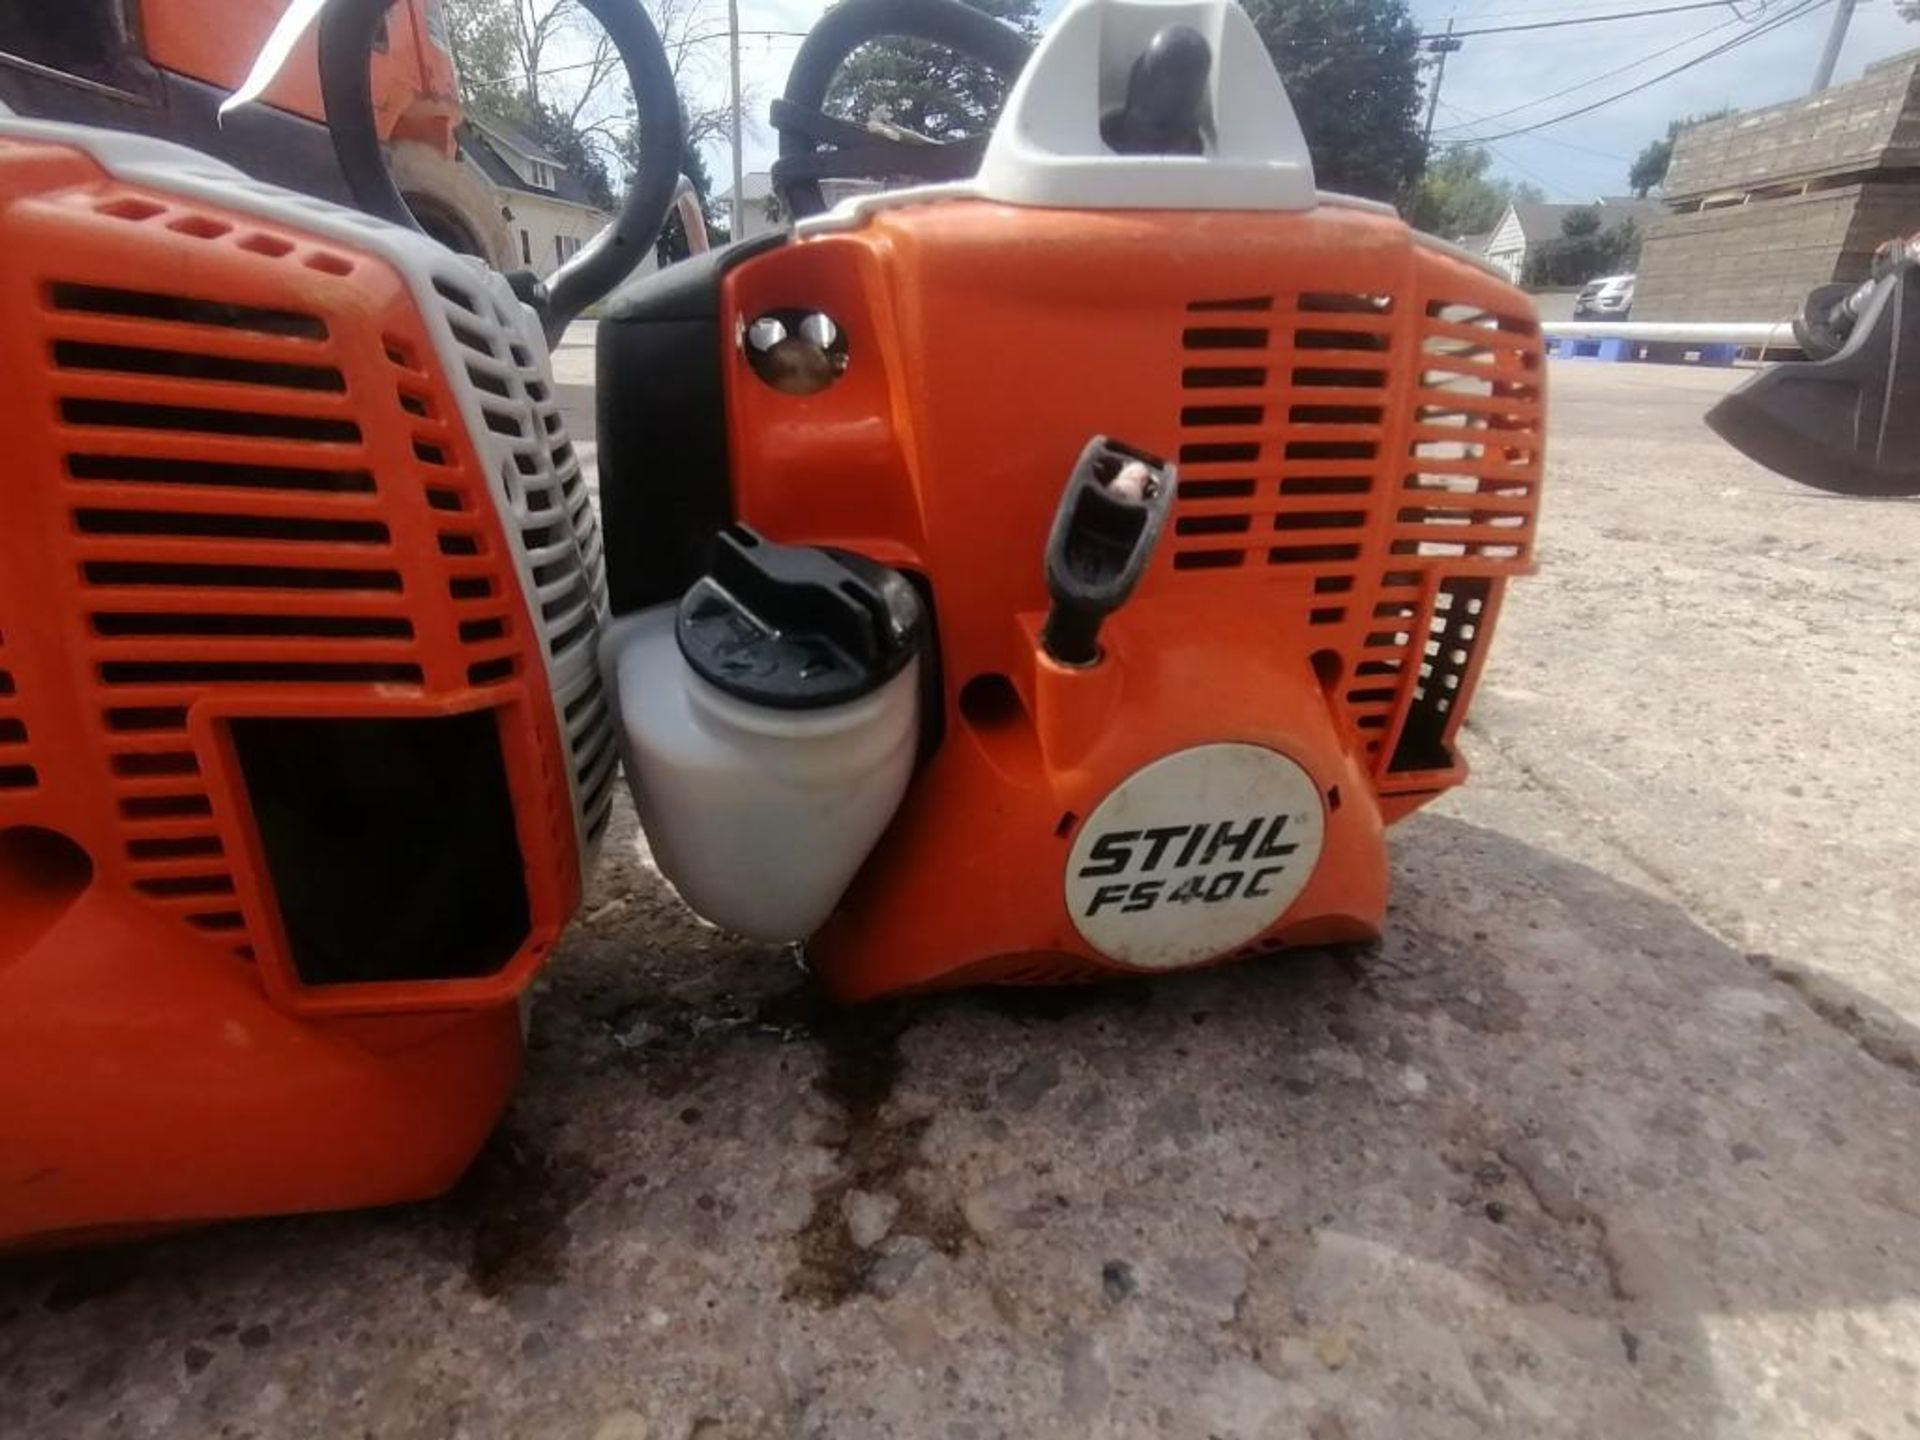 (2) Stihl FS40C String Trimmer. Located at 301 E Henry Street, Mt. Pleasant, IA 52641. - Image 3 of 4